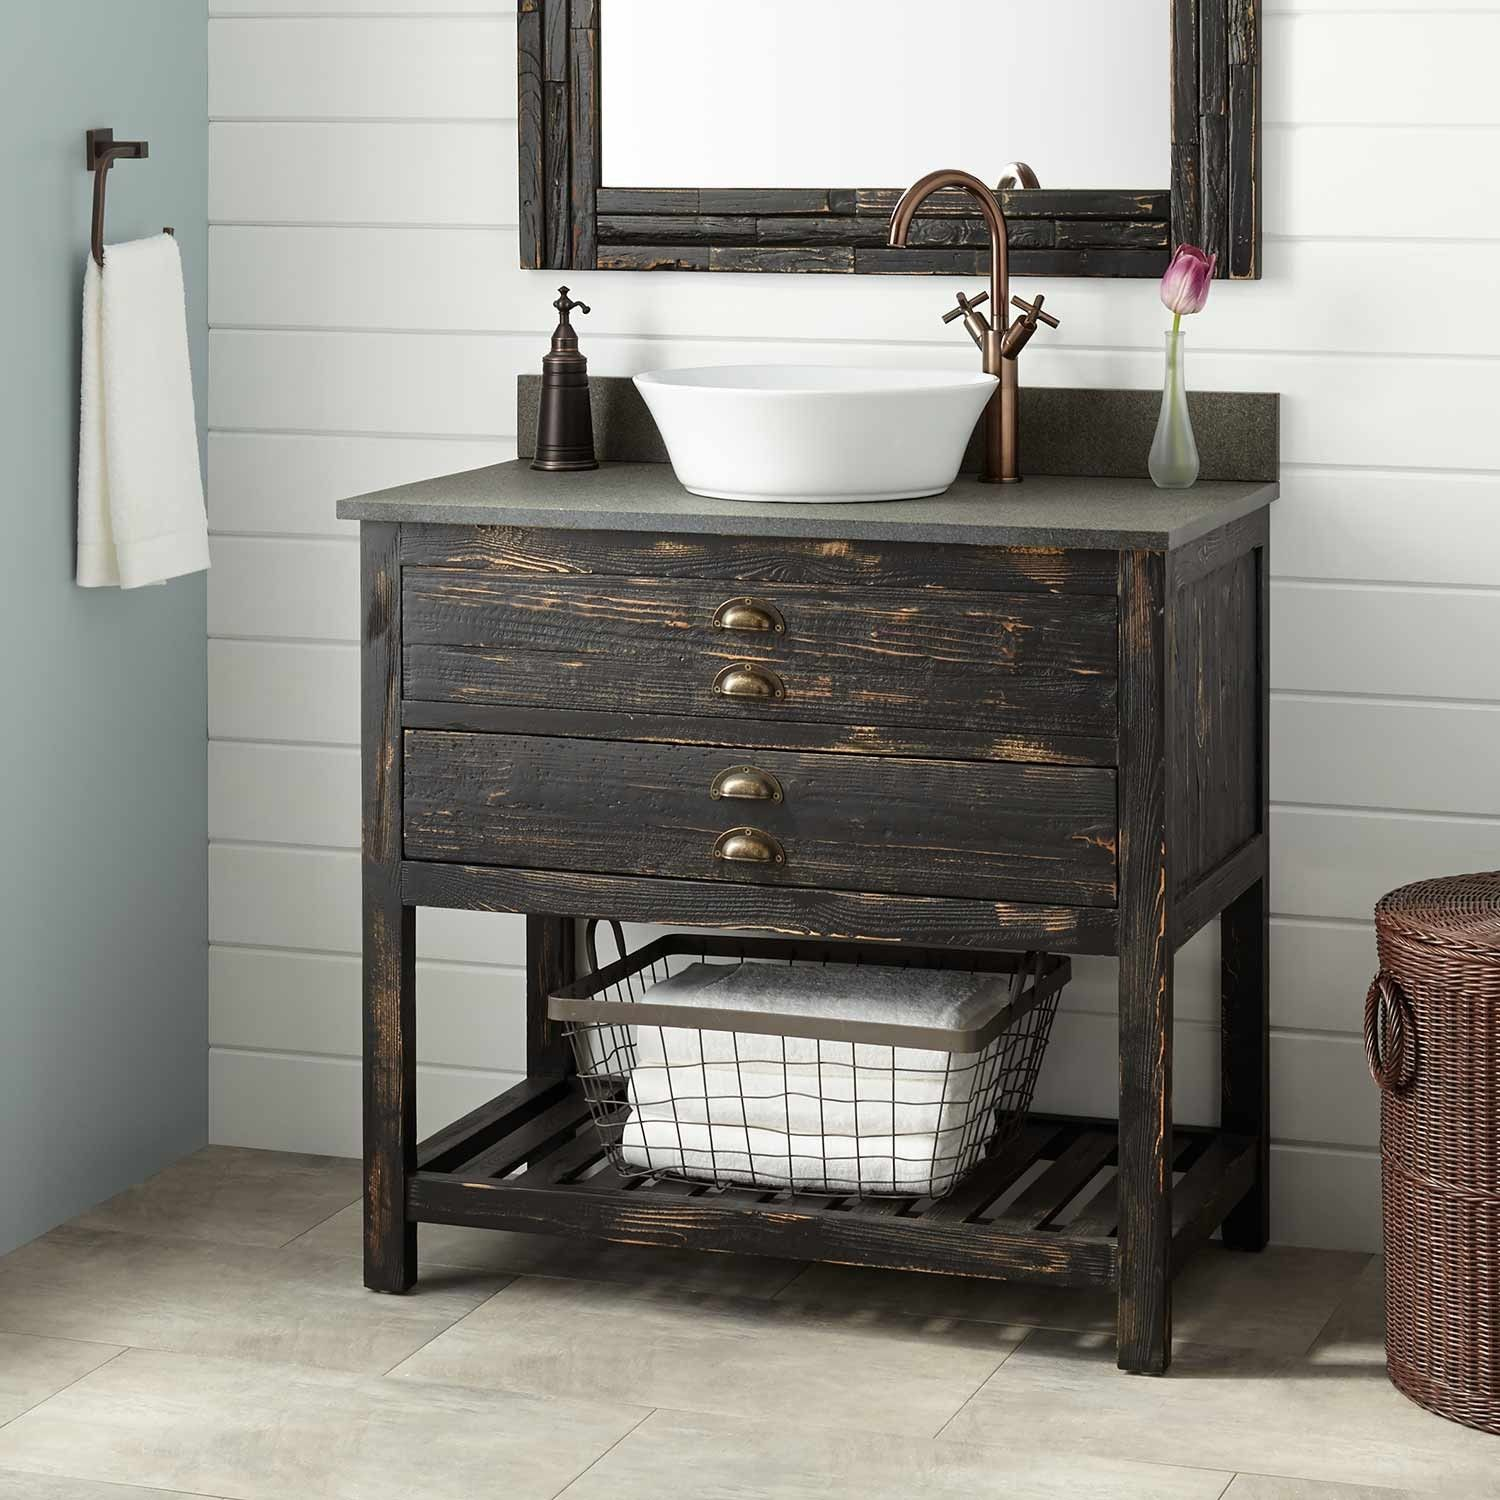 36 Benoist Reclaimed Wood Vessel Sink Vanity Distressed Pine